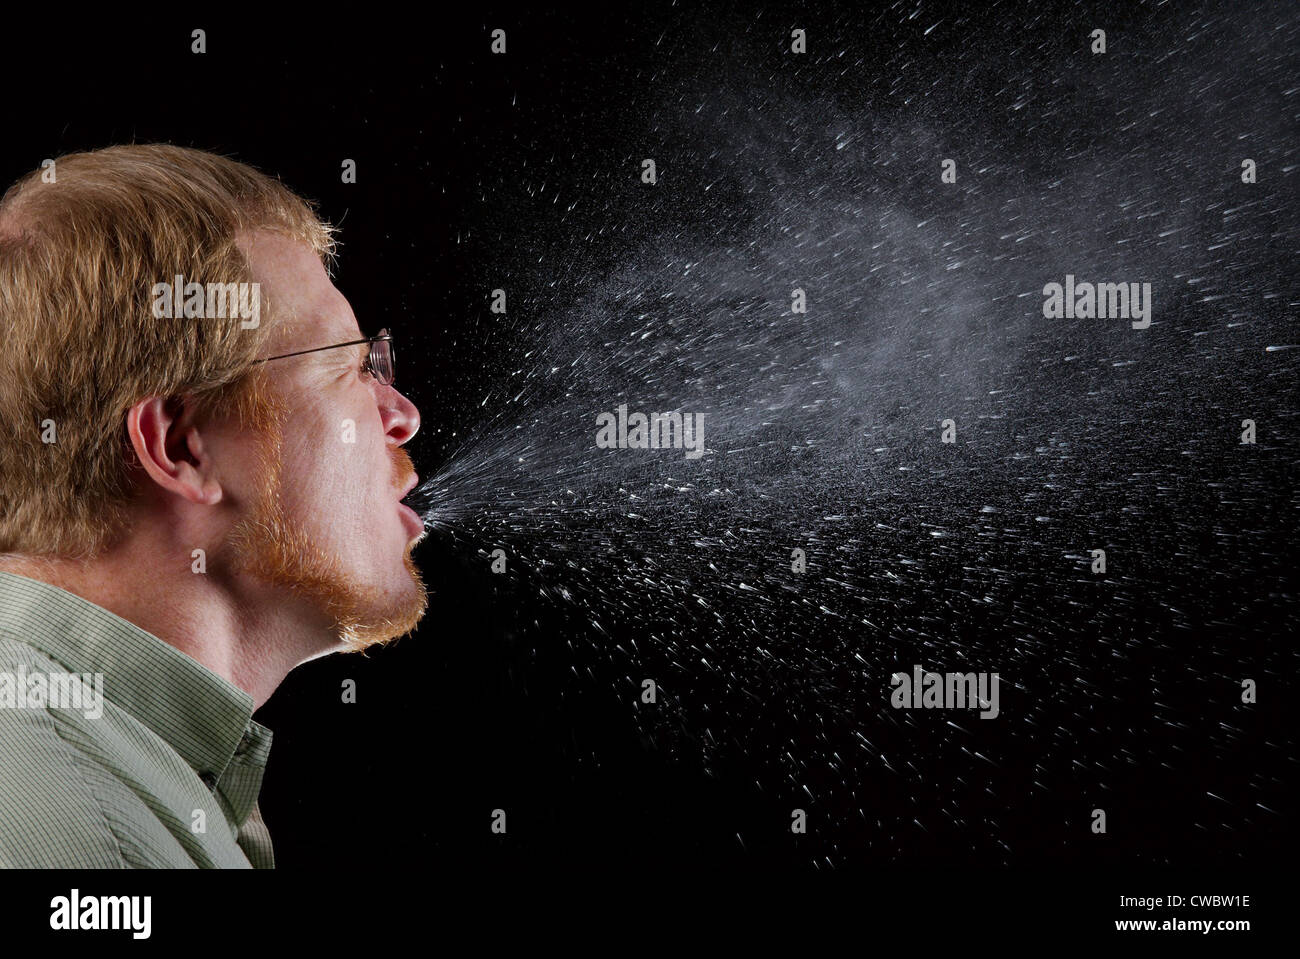 Sneeze in progress, revealing the plume of salivary droplets expelled from this man's open mouth. Photo by James - Stock Image